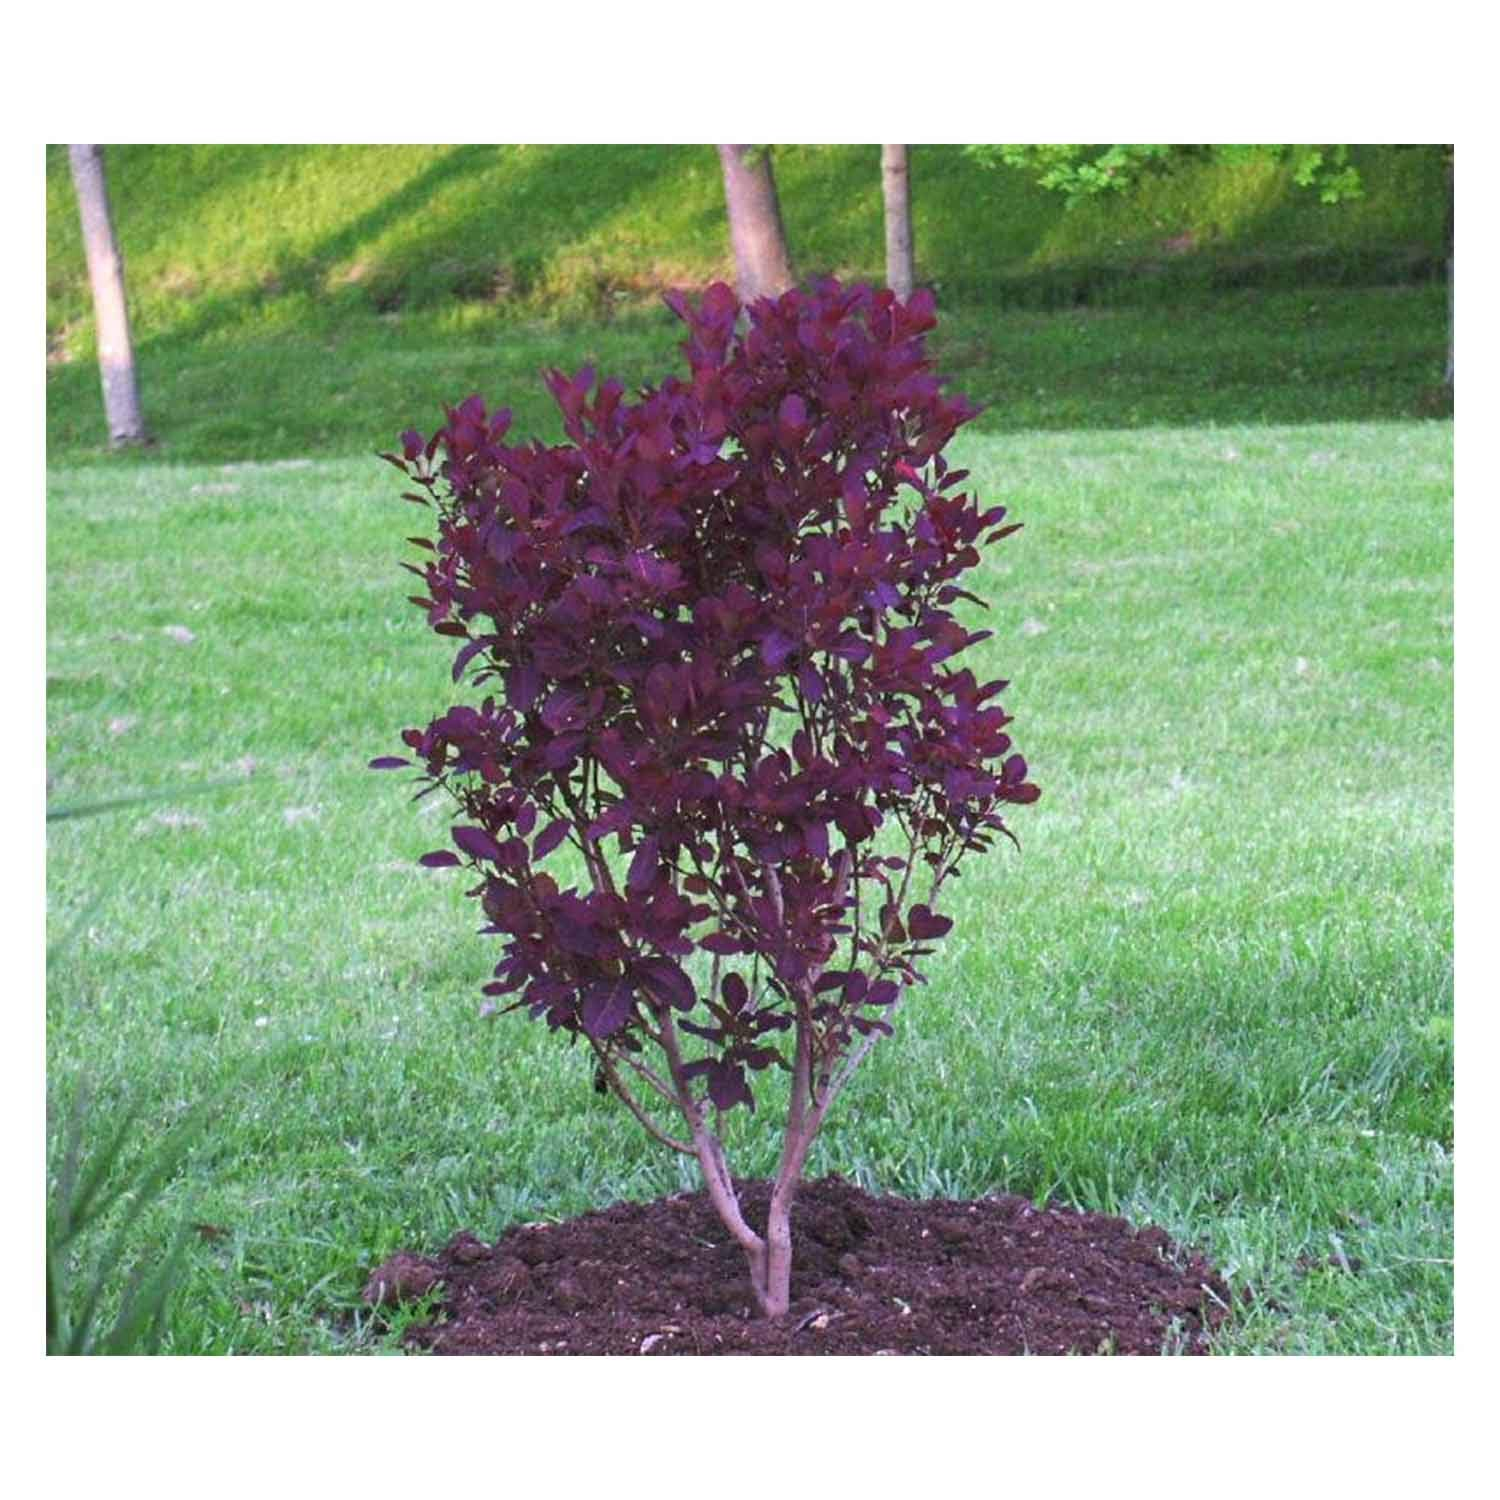 Royal Purple Smoketree Cotinus Coggygria Heavy Established Roots 1 Trade Gallon Pot - 1 plant by Growers Solution